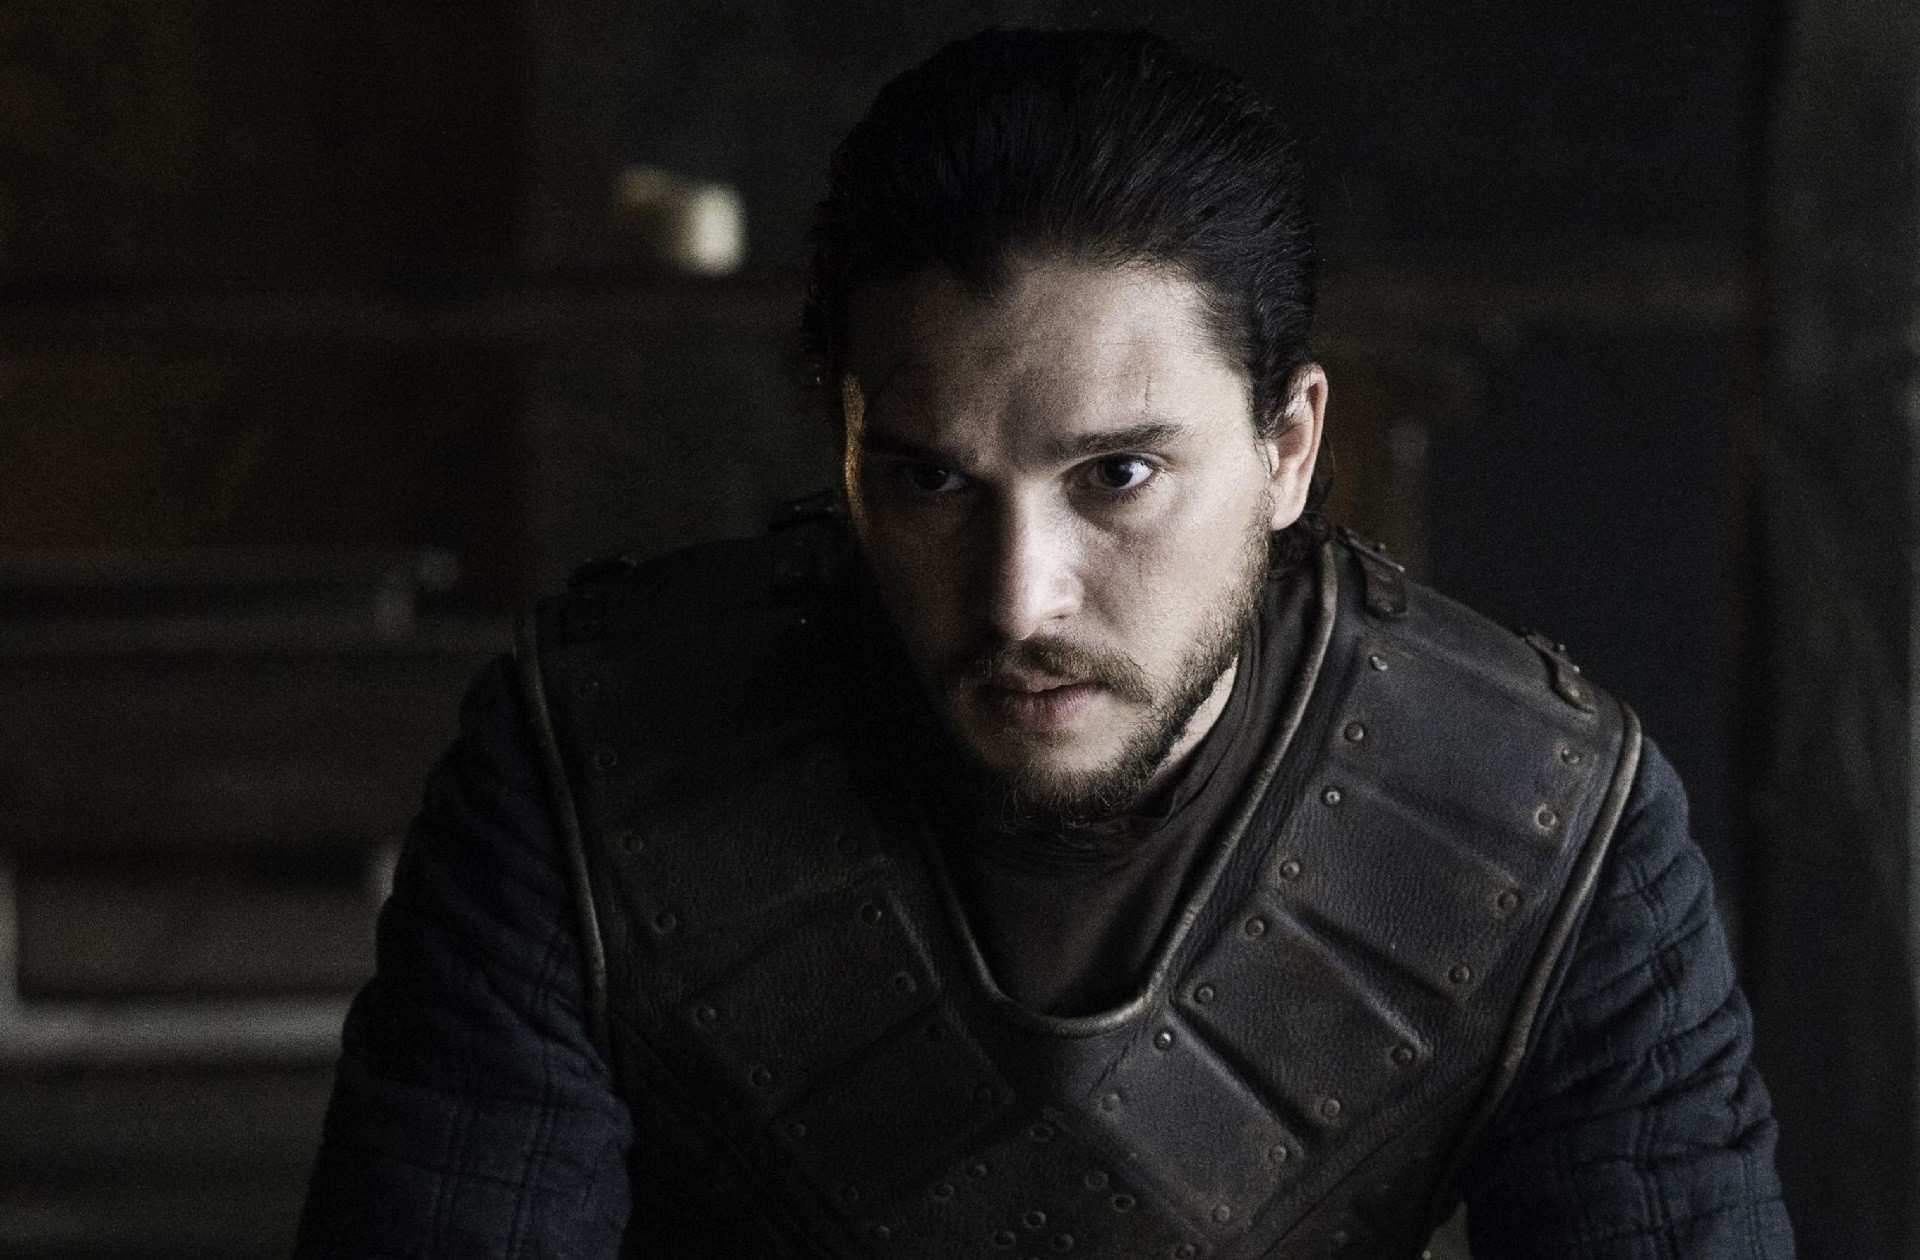 Res: 1920x1260, Fighting against the evil forces beyond the wall jon snow has earned a  reputation that he cares about his people and will protect them at any cost.